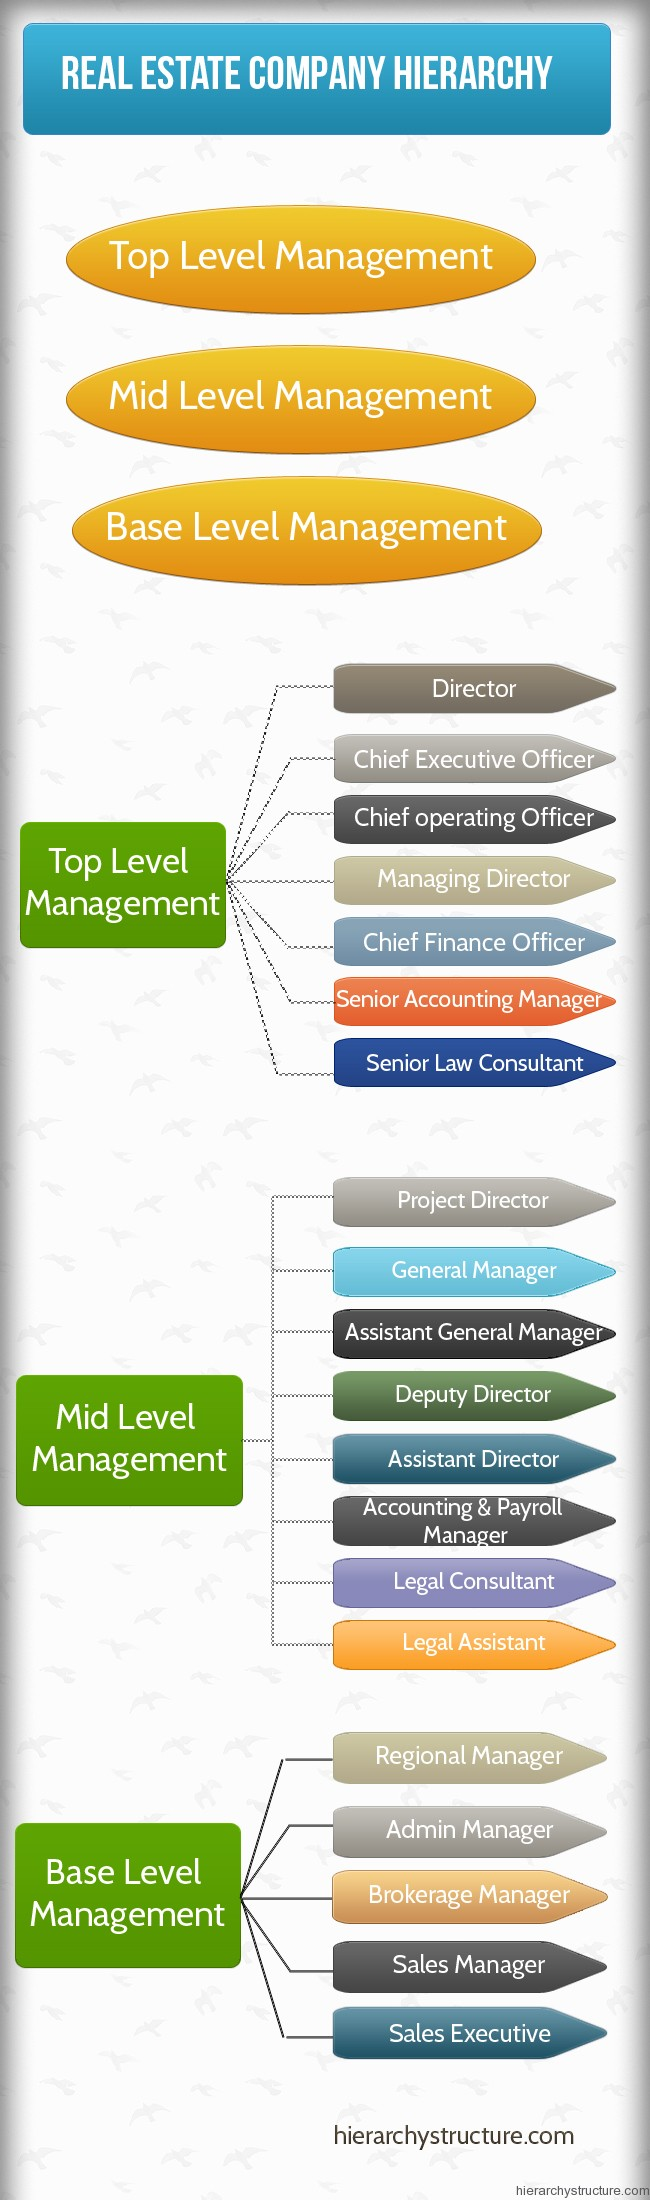 Real Estate Development Companies : Real estate company hierarchy